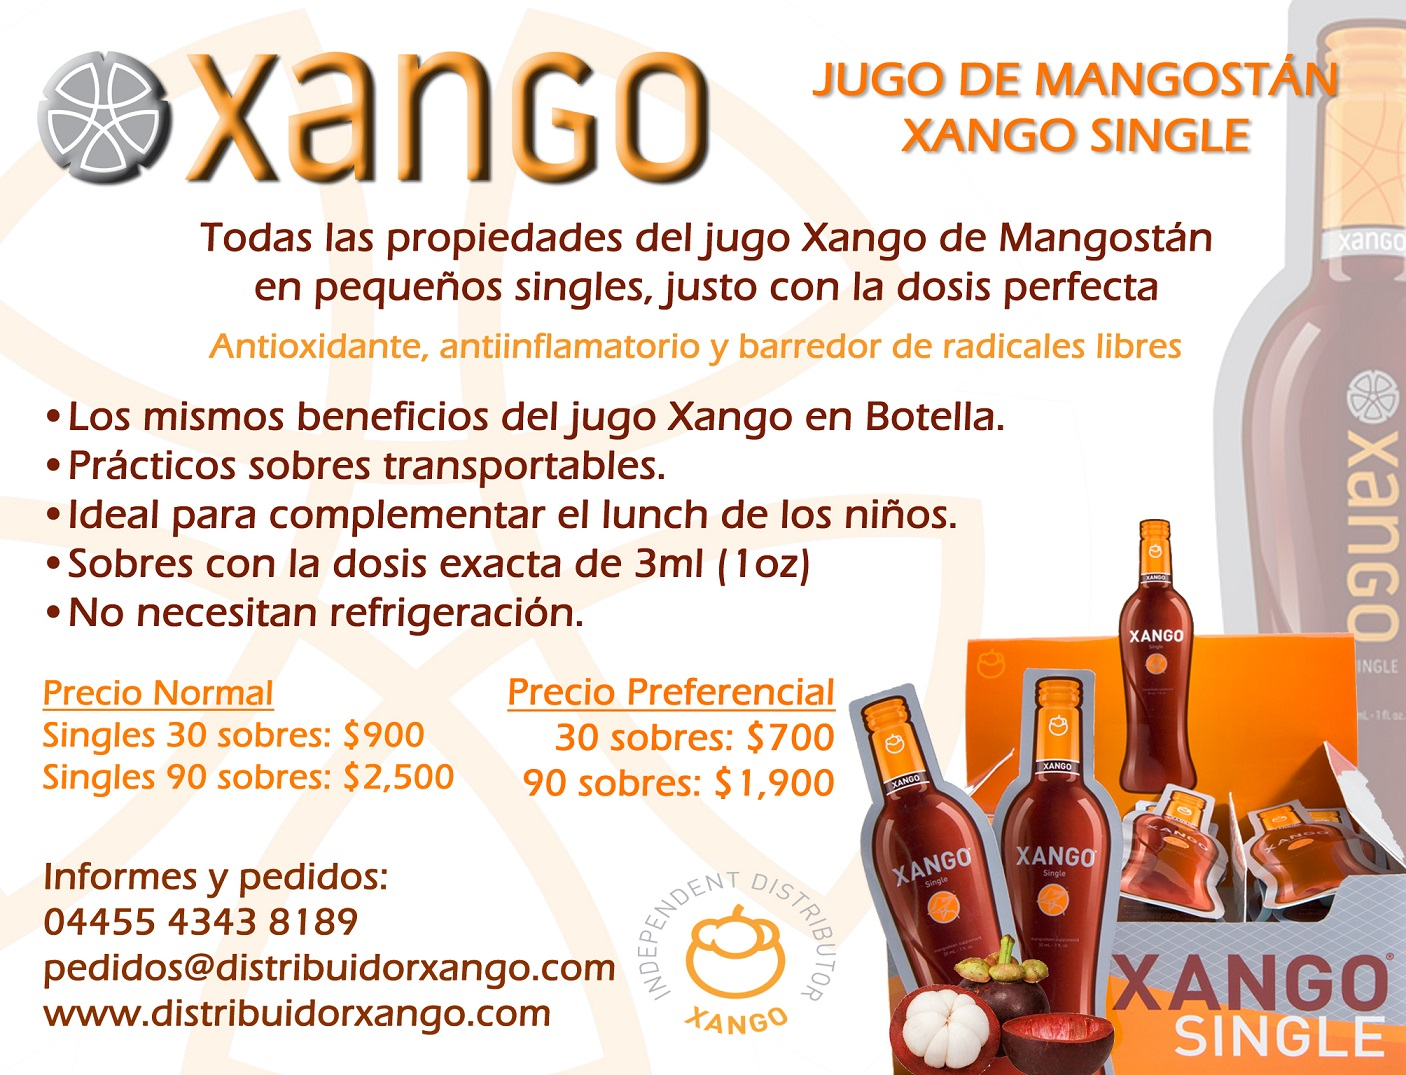 Productos xango distribuidor xango for Productos para singles